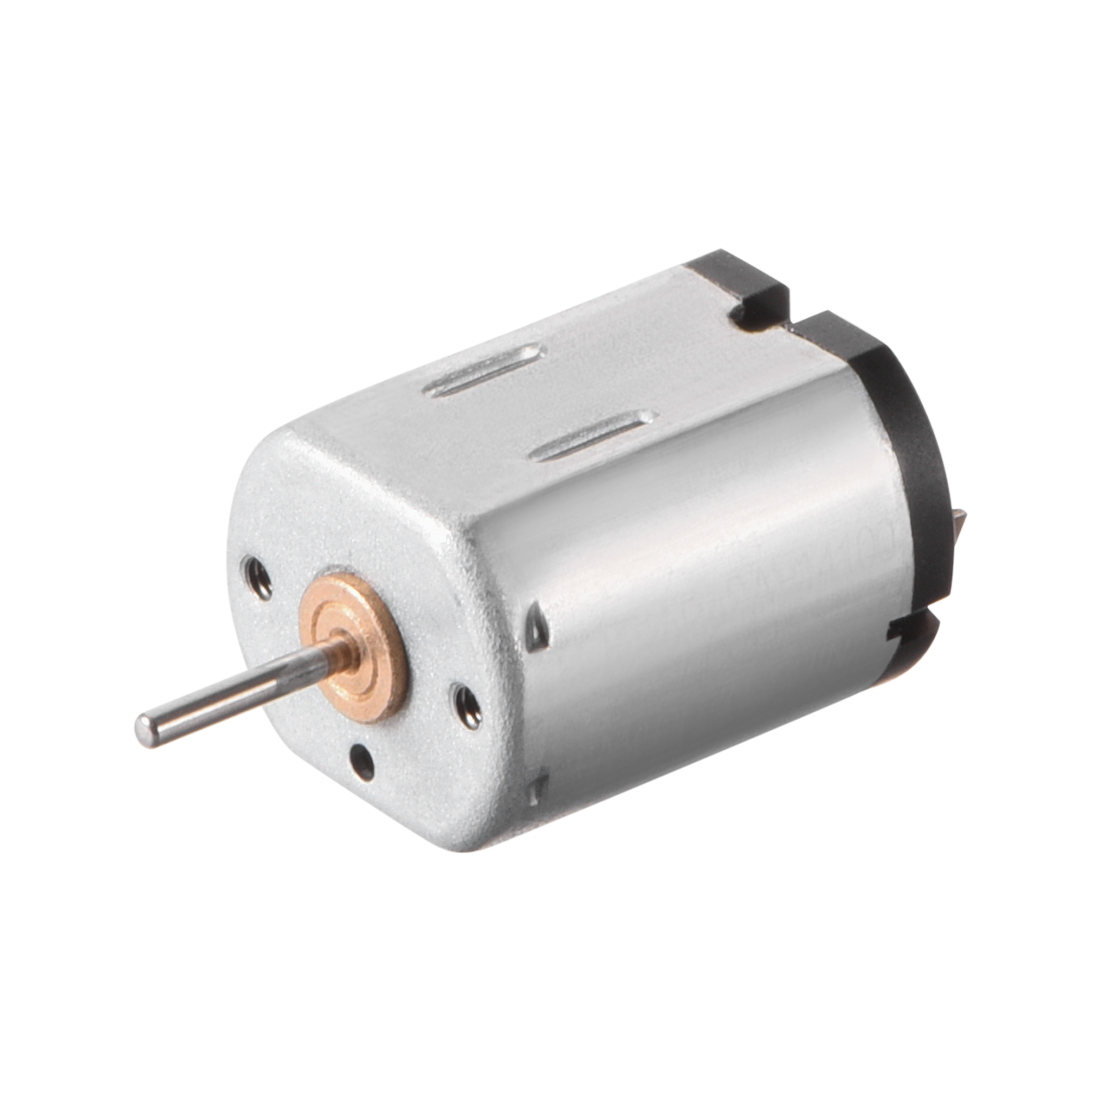 Micro Motor DC 3V 22000RPM High Speed Motor for DIY Toy Cars Remote Control